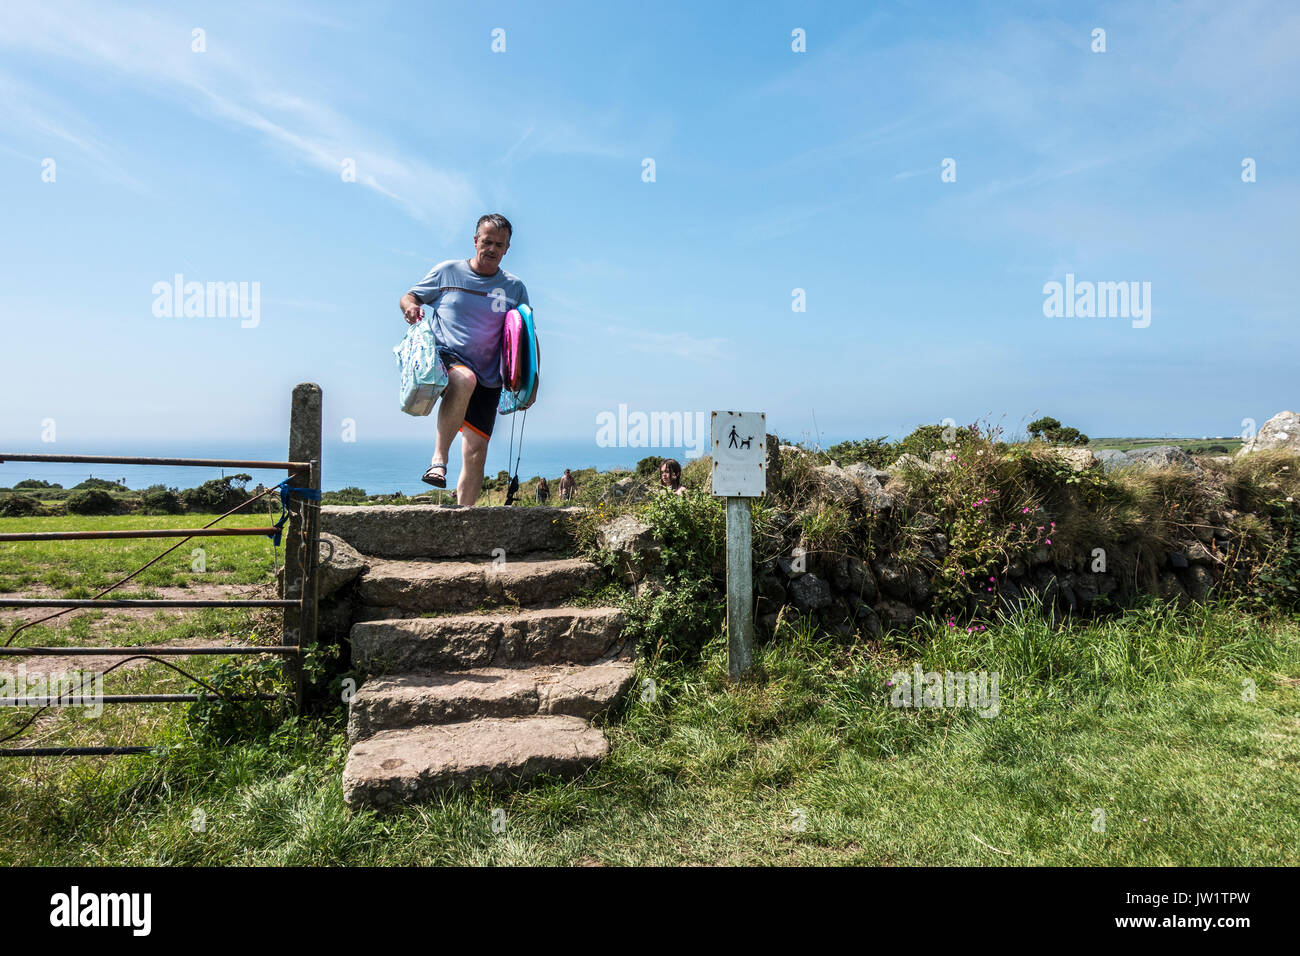 A man carrying surfboards while climbing stone steps, after returning from Gwynver Beach, Sennen, near Penzance, Cornwall, England, UK. - Stock Image